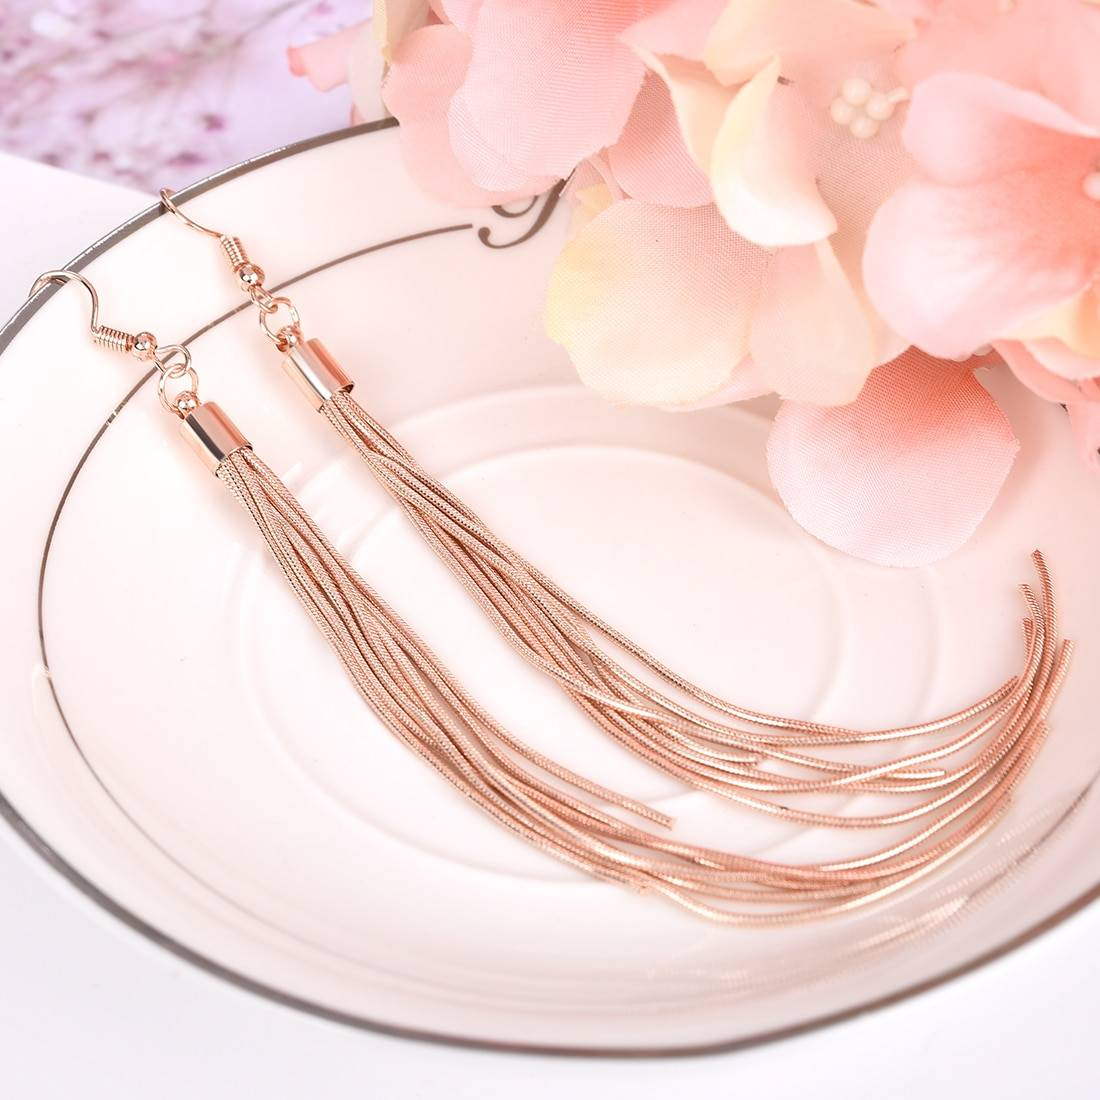 Vintage Long Earrings Silver color Tassel Earrings High Quality Earrings Fashion Jewelry for Women Best Gift 2018 Earrings